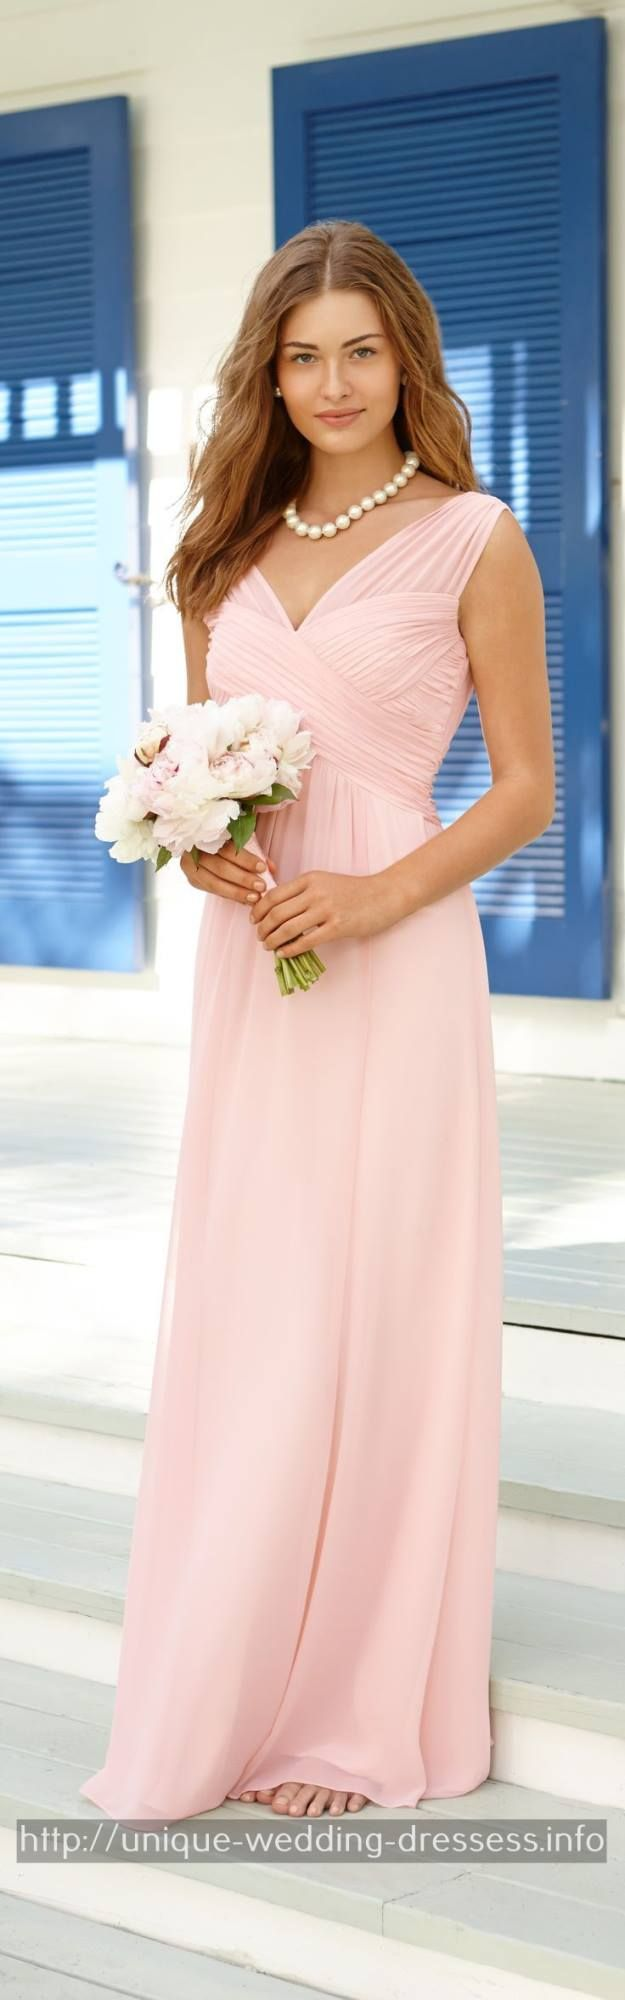 56 best Dress images on Pinterest   Short wedding gowns, Bridal and ...